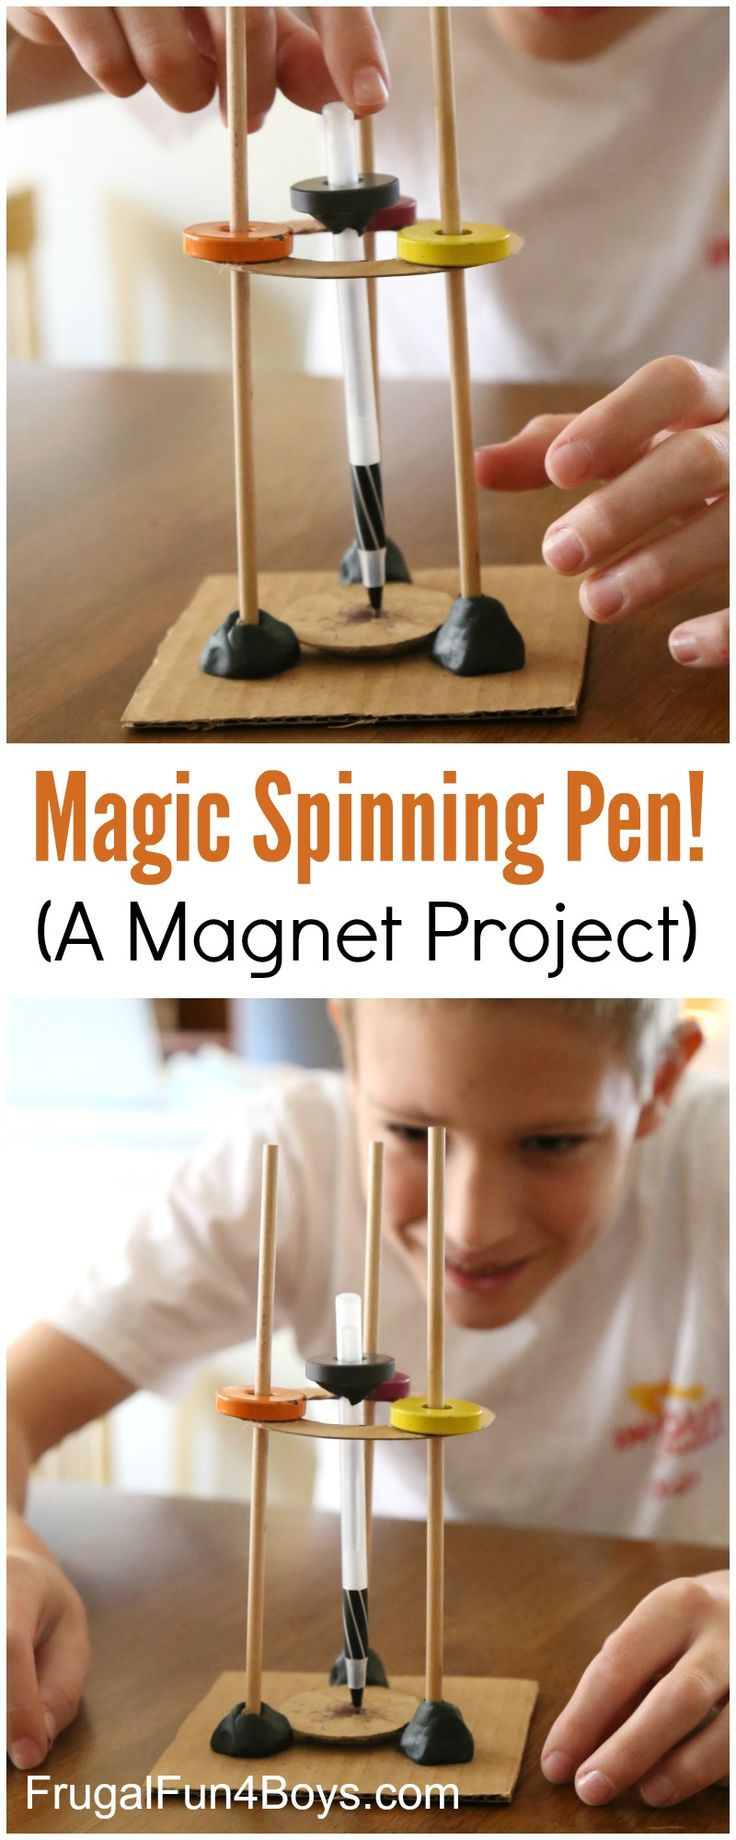 magnet science projects Physics science project: discover how magnets attract and repel and use that information to levitate a magnet.